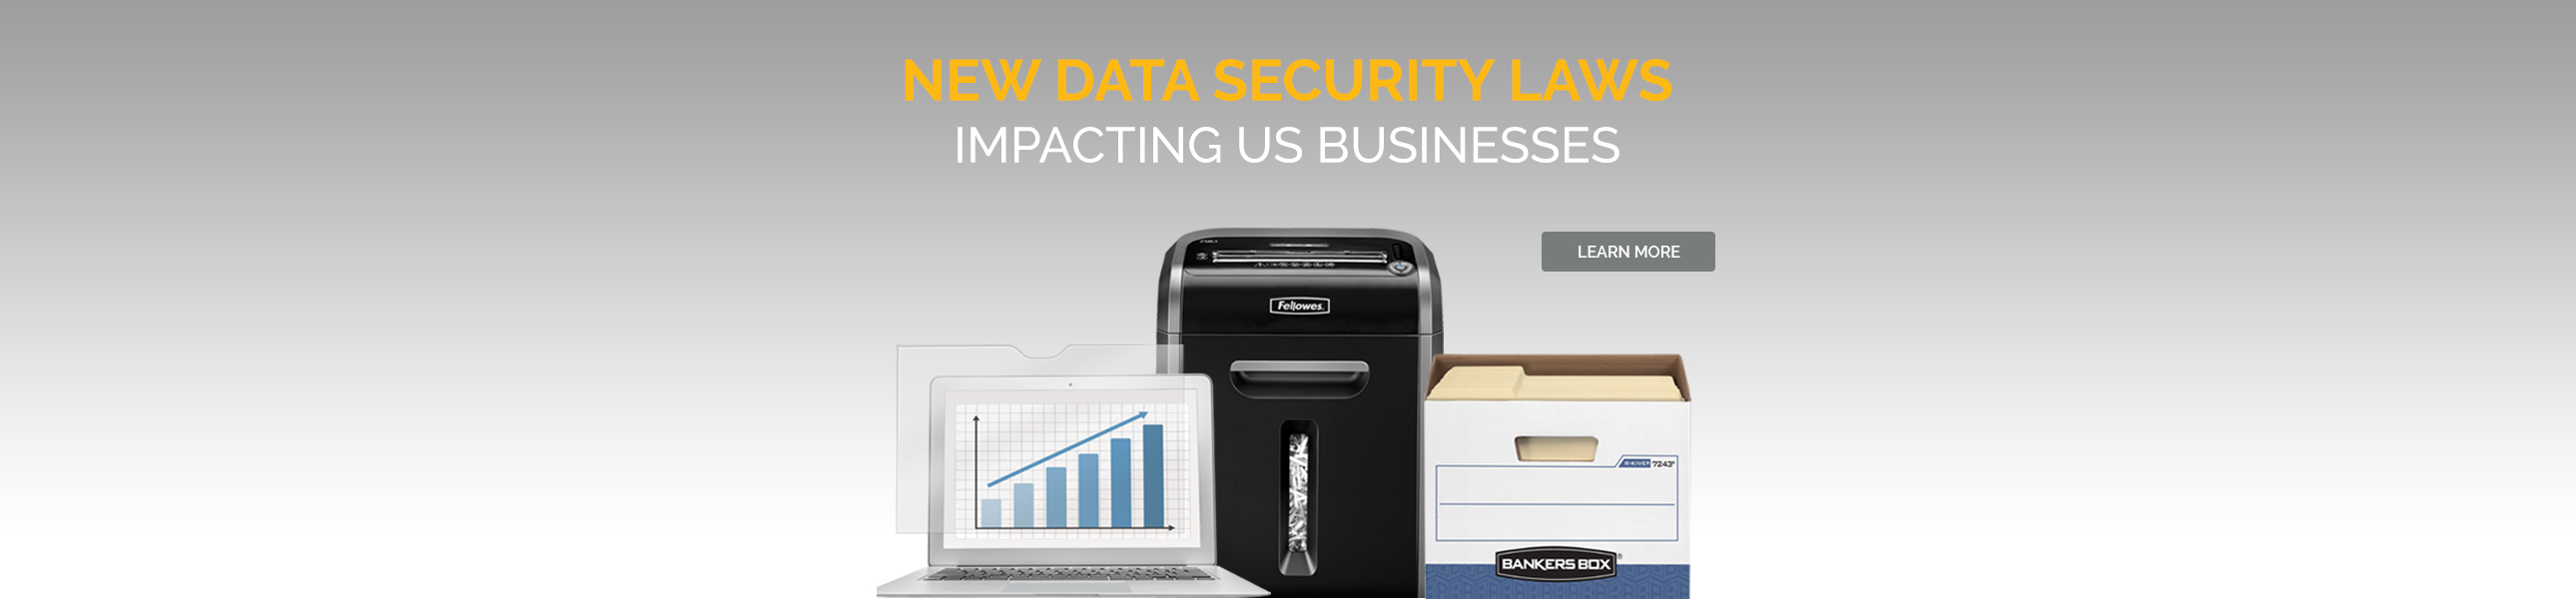 New Data Security Law Impacts US Businesses